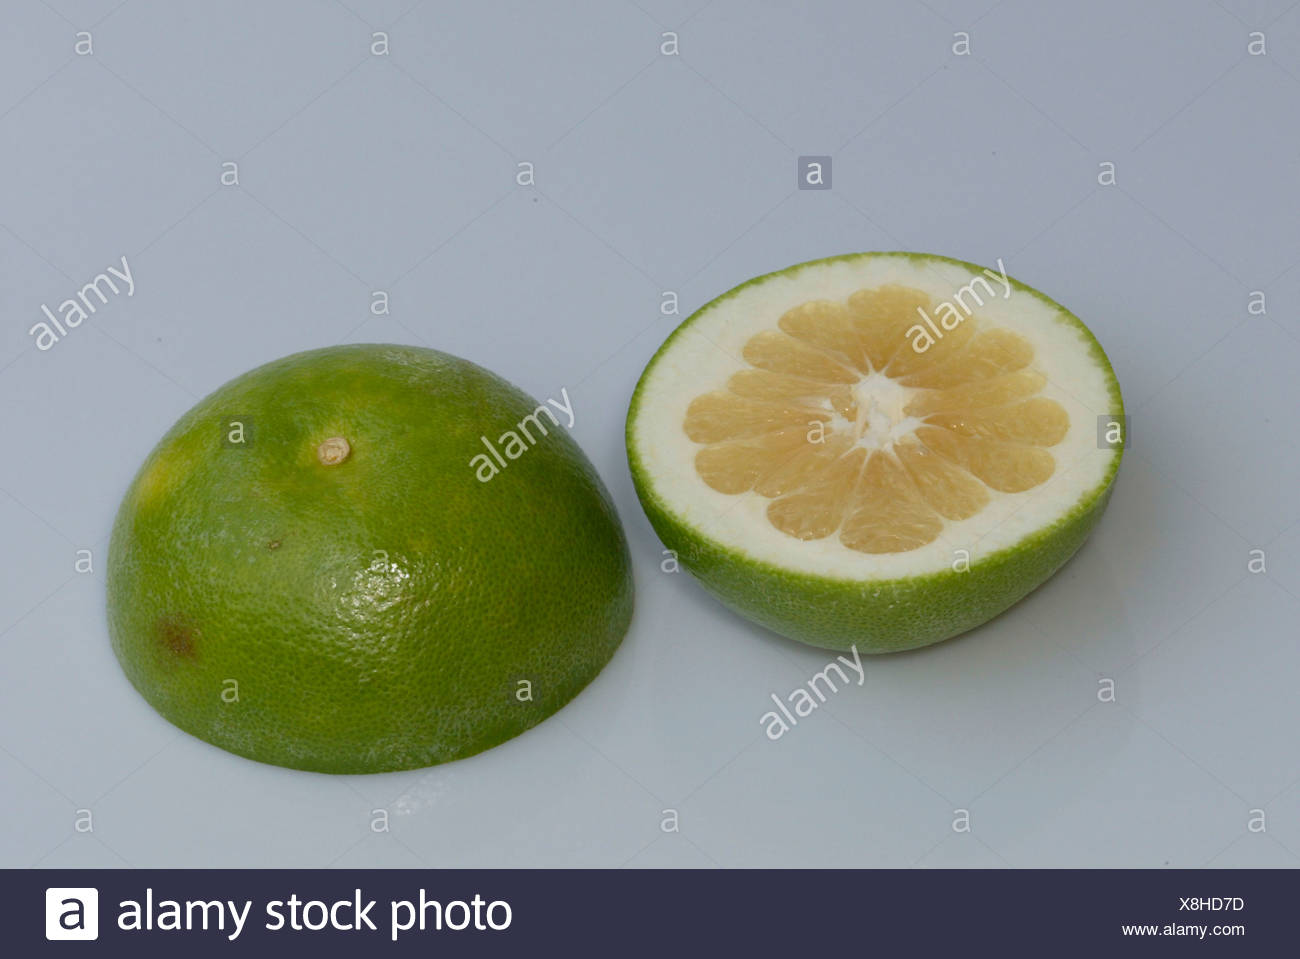 Grapefruit / Pampelmuse Stock Photo